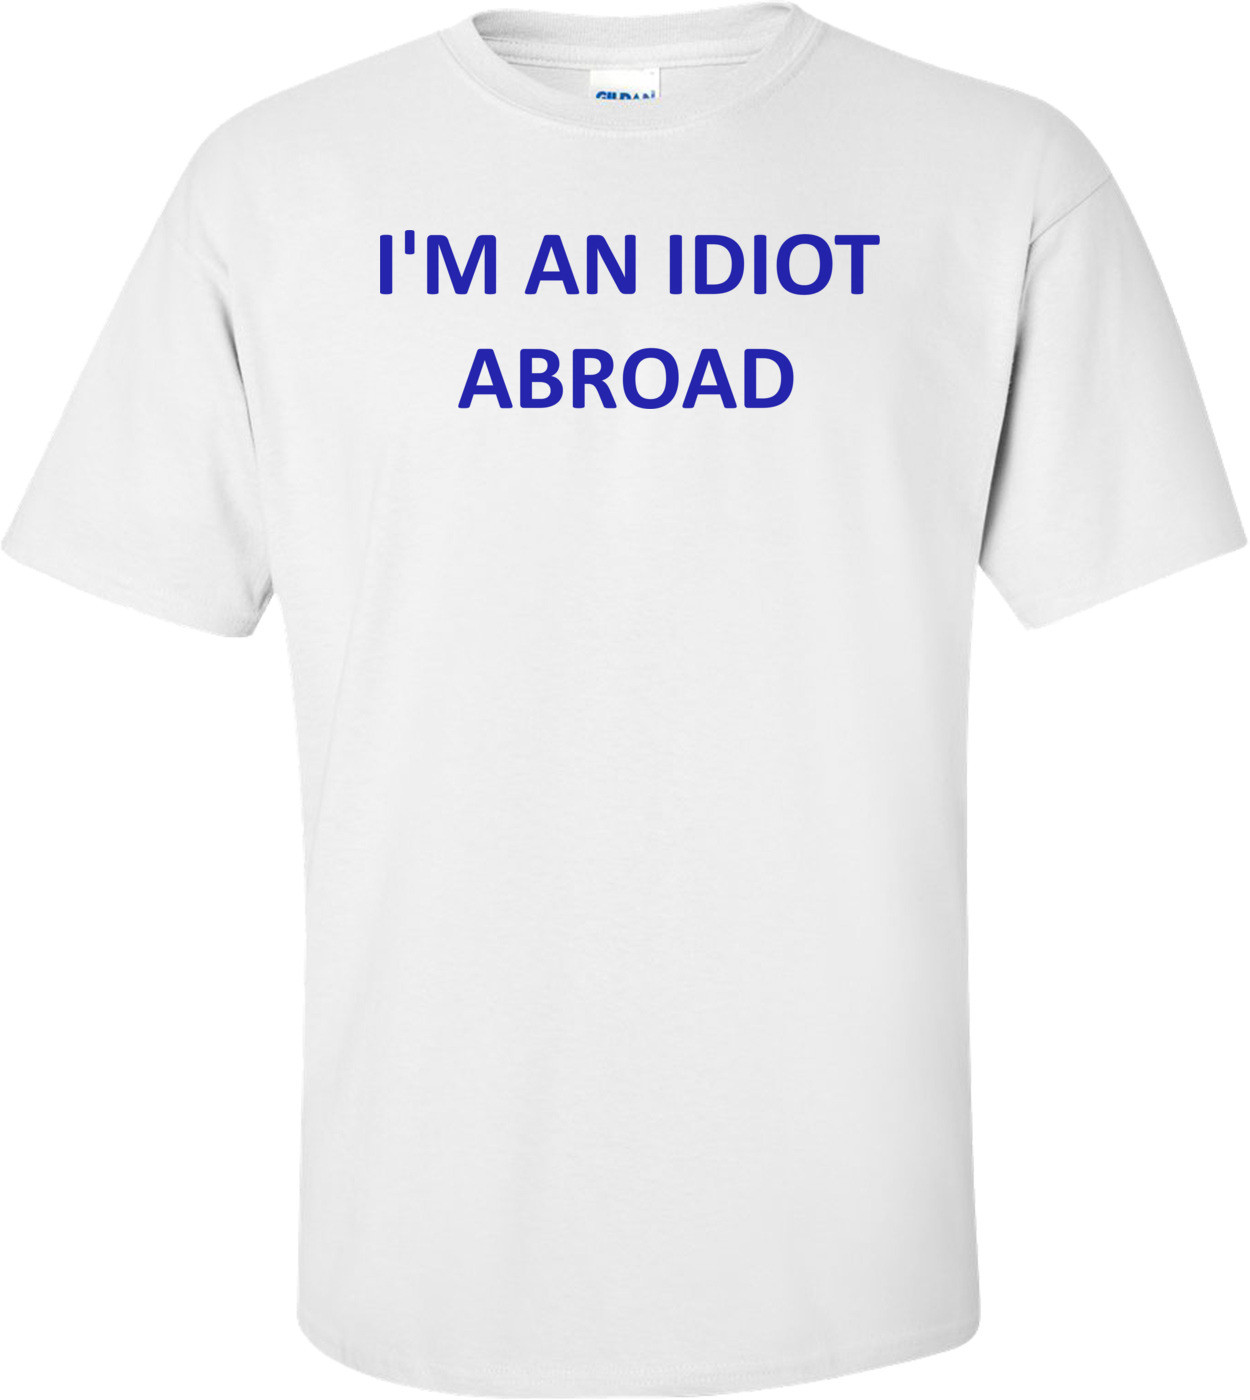 I'M AN IDIOT ABROAD Shirt